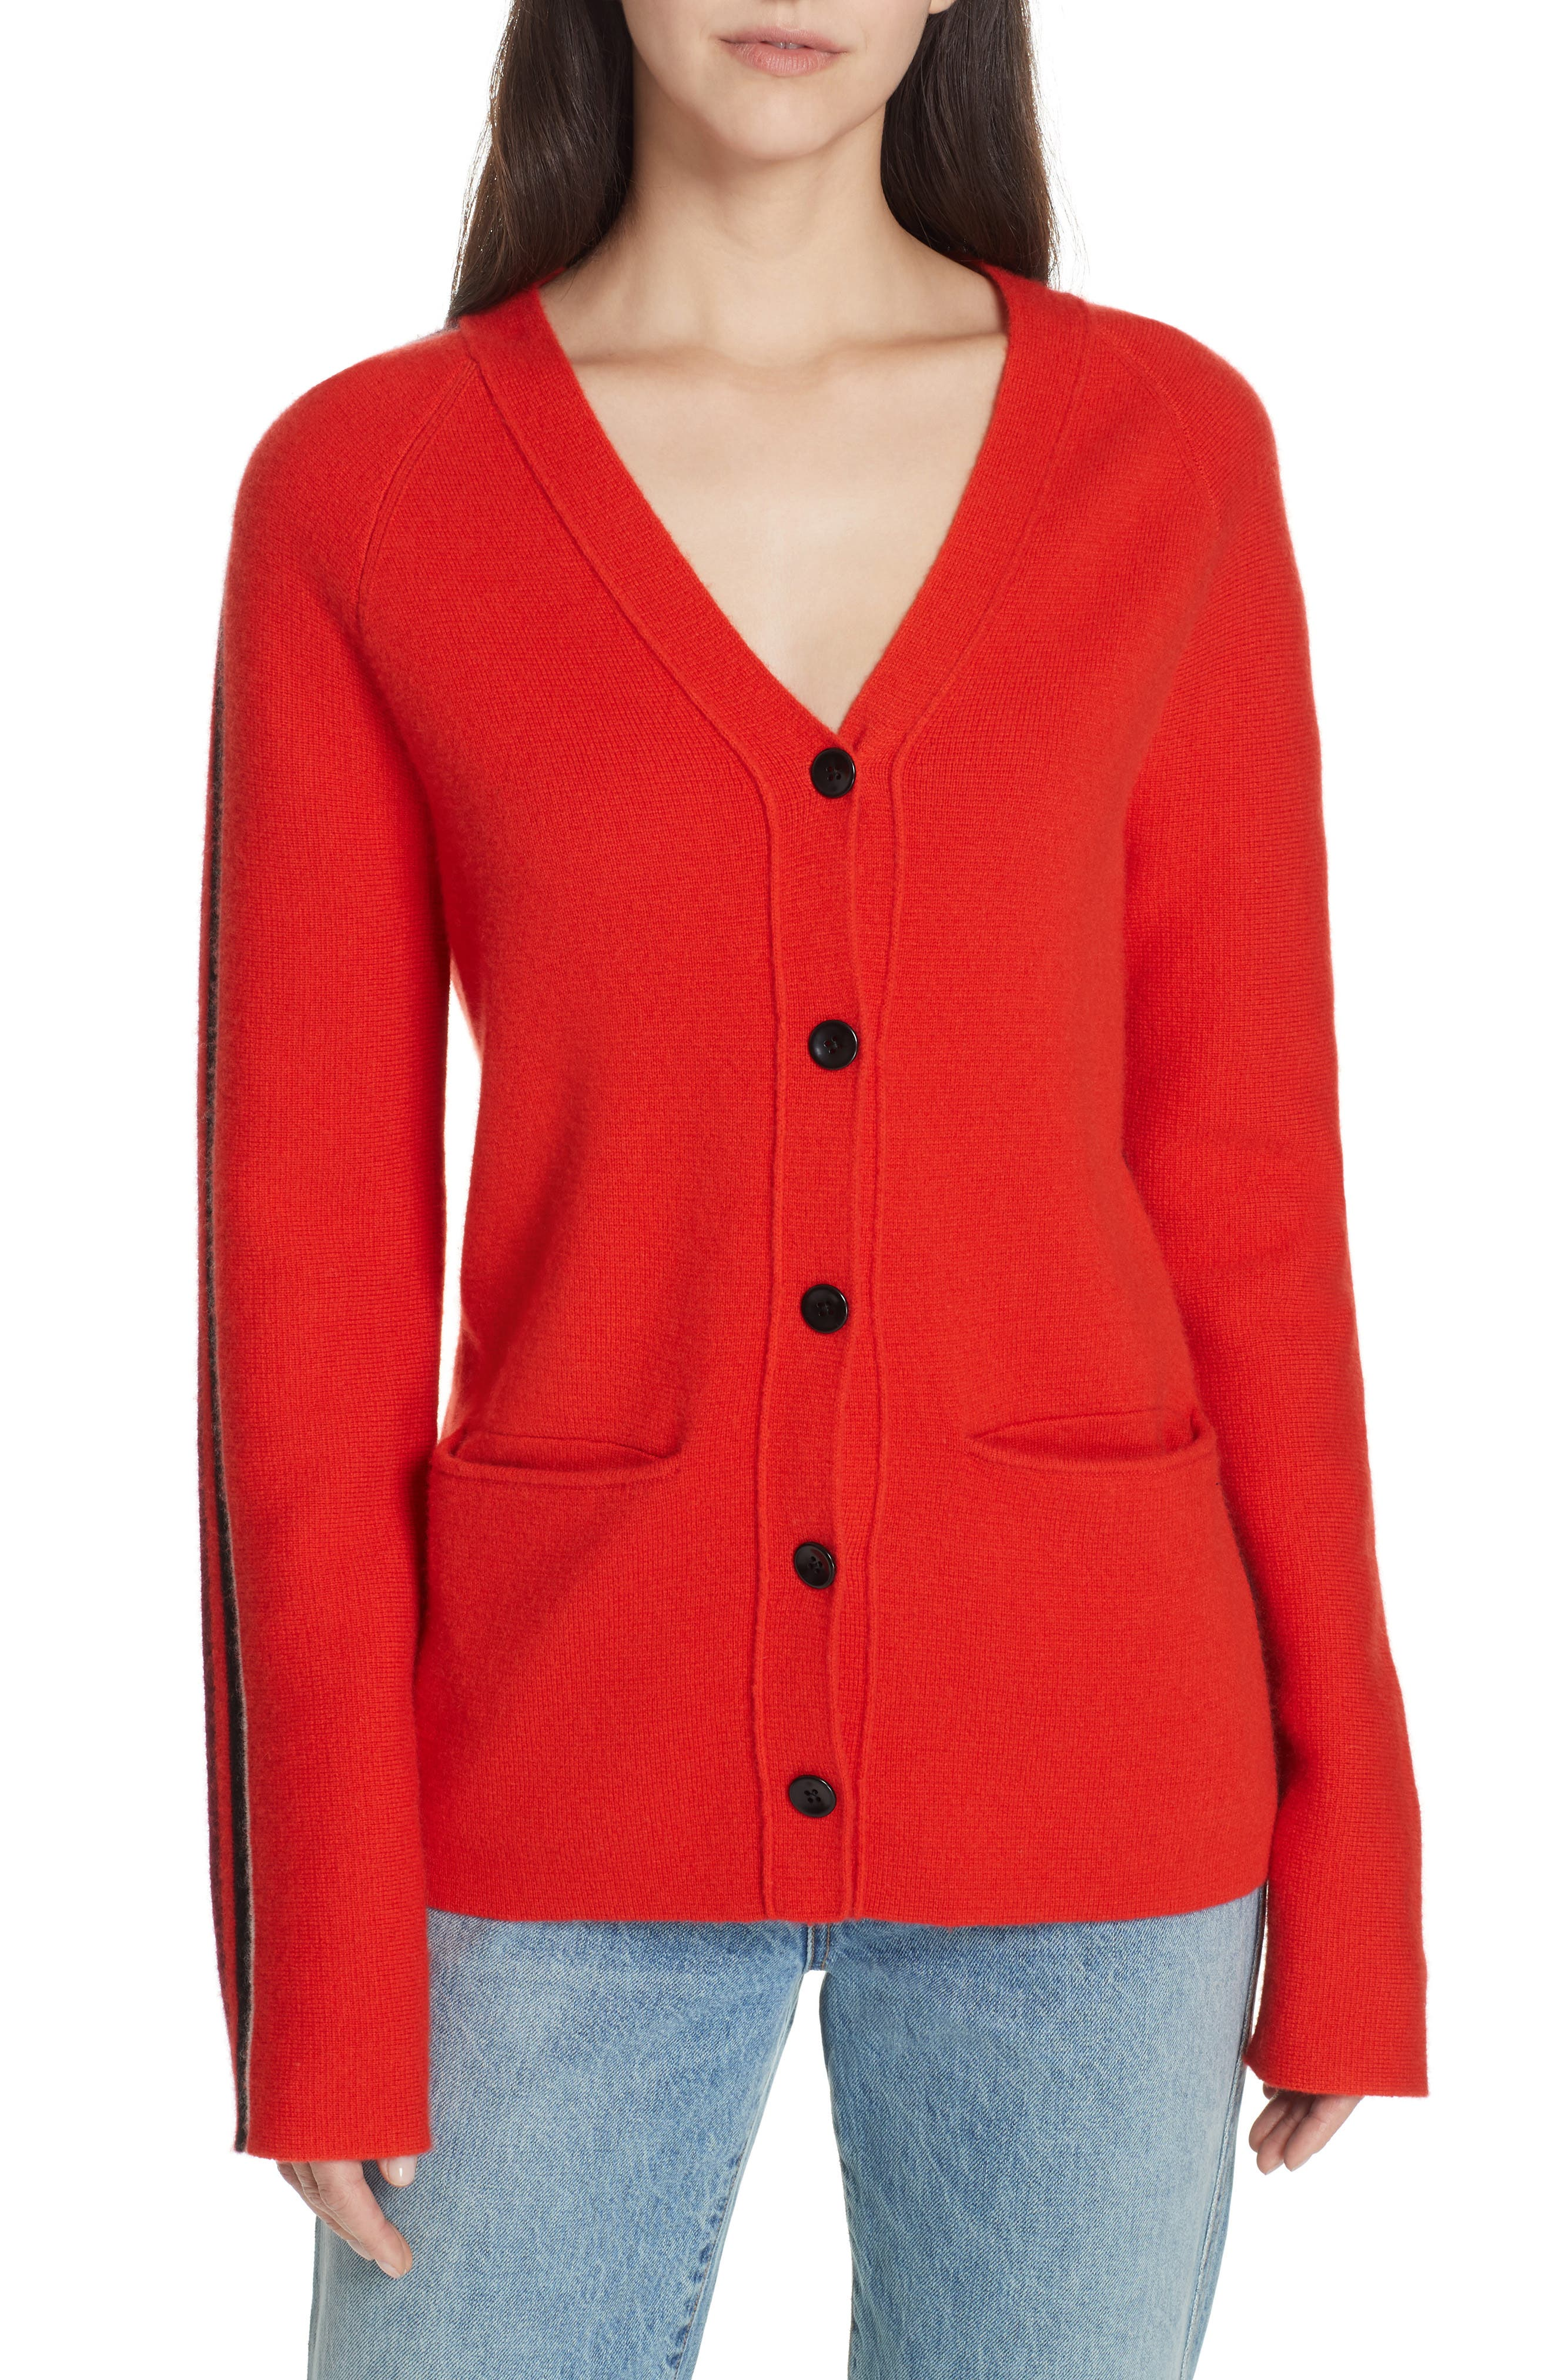 PSWL Stripe Sleeve Merino Wool & Cashmere Cardigan, Main, color, RED COMBO